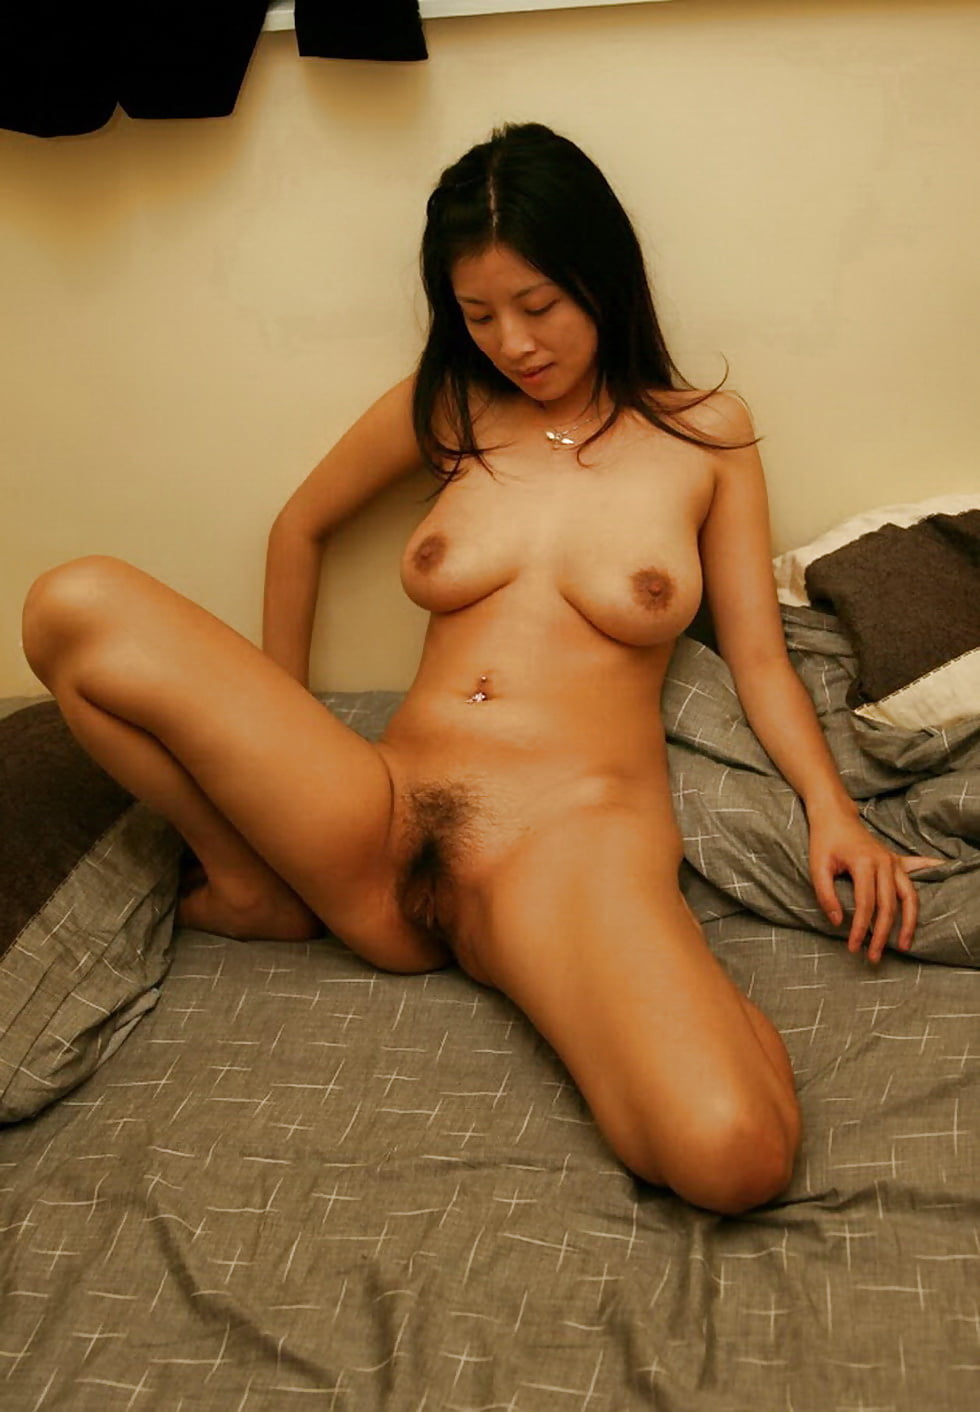 bloodsex-real-asian-nude-amature-good